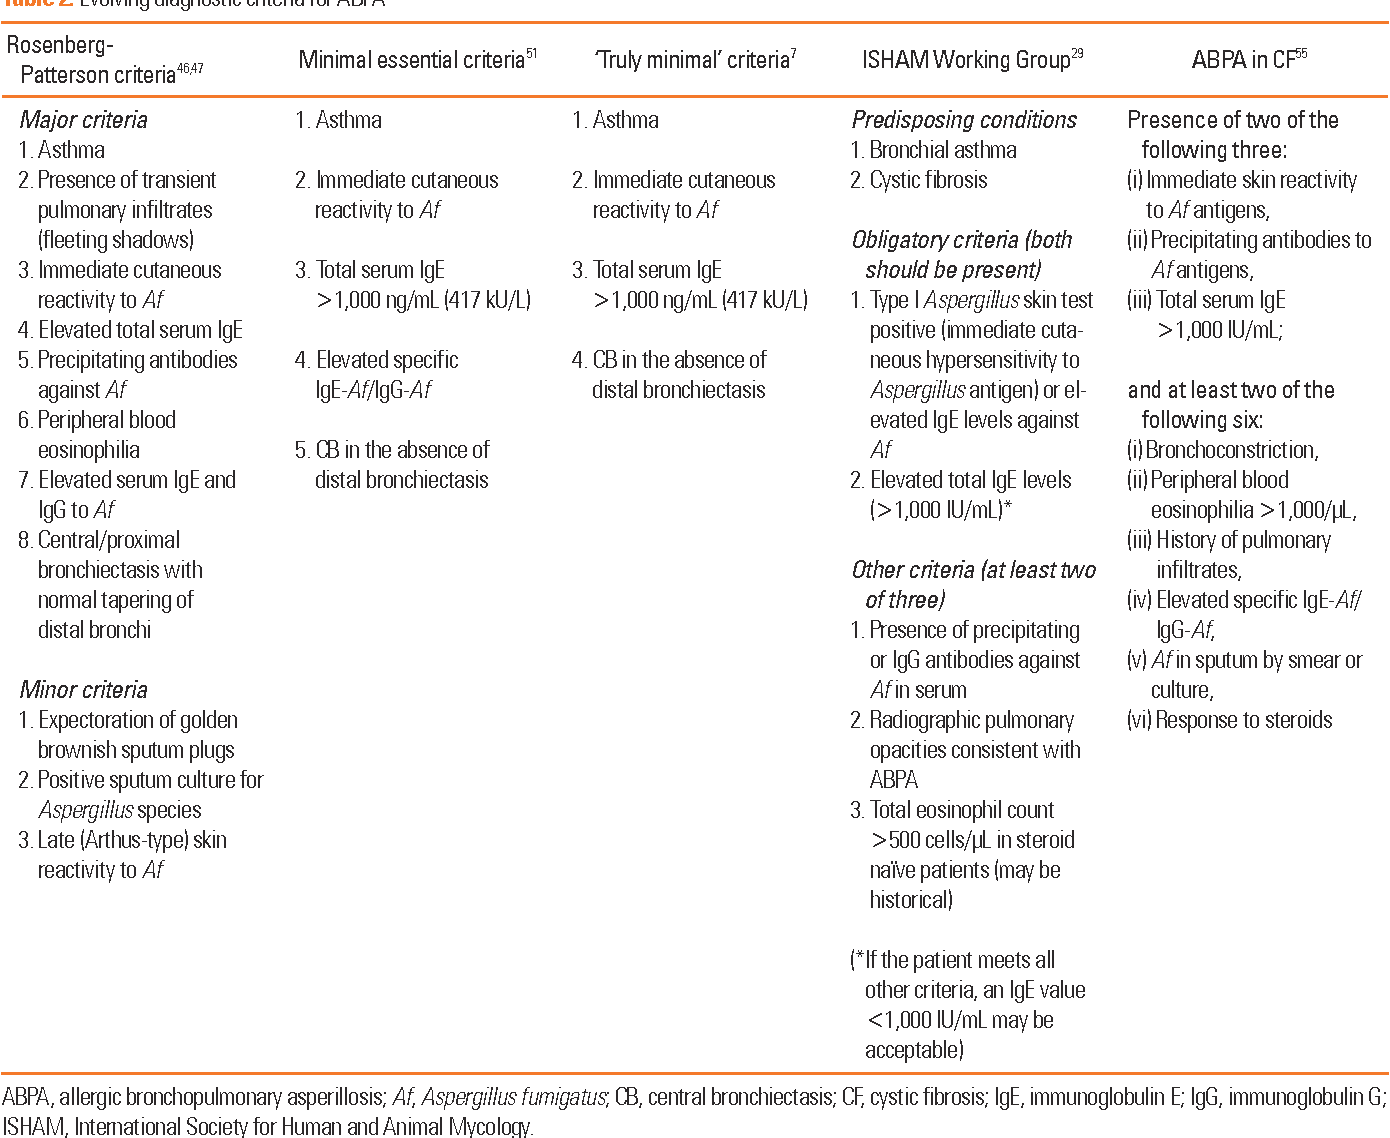 Table 2 from Allergic Bronchopulmonary Aspergillosis: A